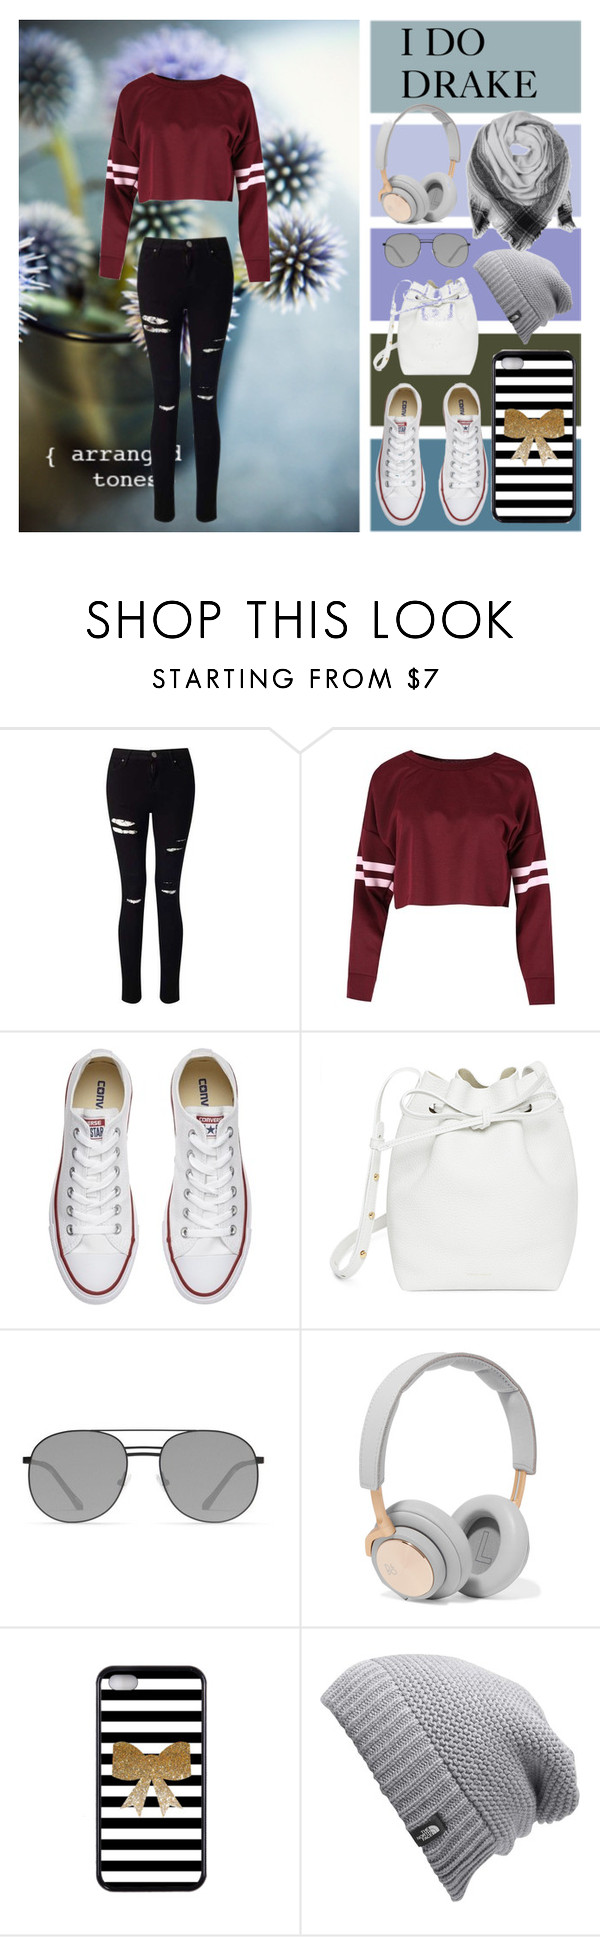 """Favourite Girl ~Justin Bieber"" by very-berry-fashionista ❤ liked on Polyvore featuring Miss Selfridge, Converse, Mansur Gavriel, Elizabeth and James, B&O Play and The North Face"